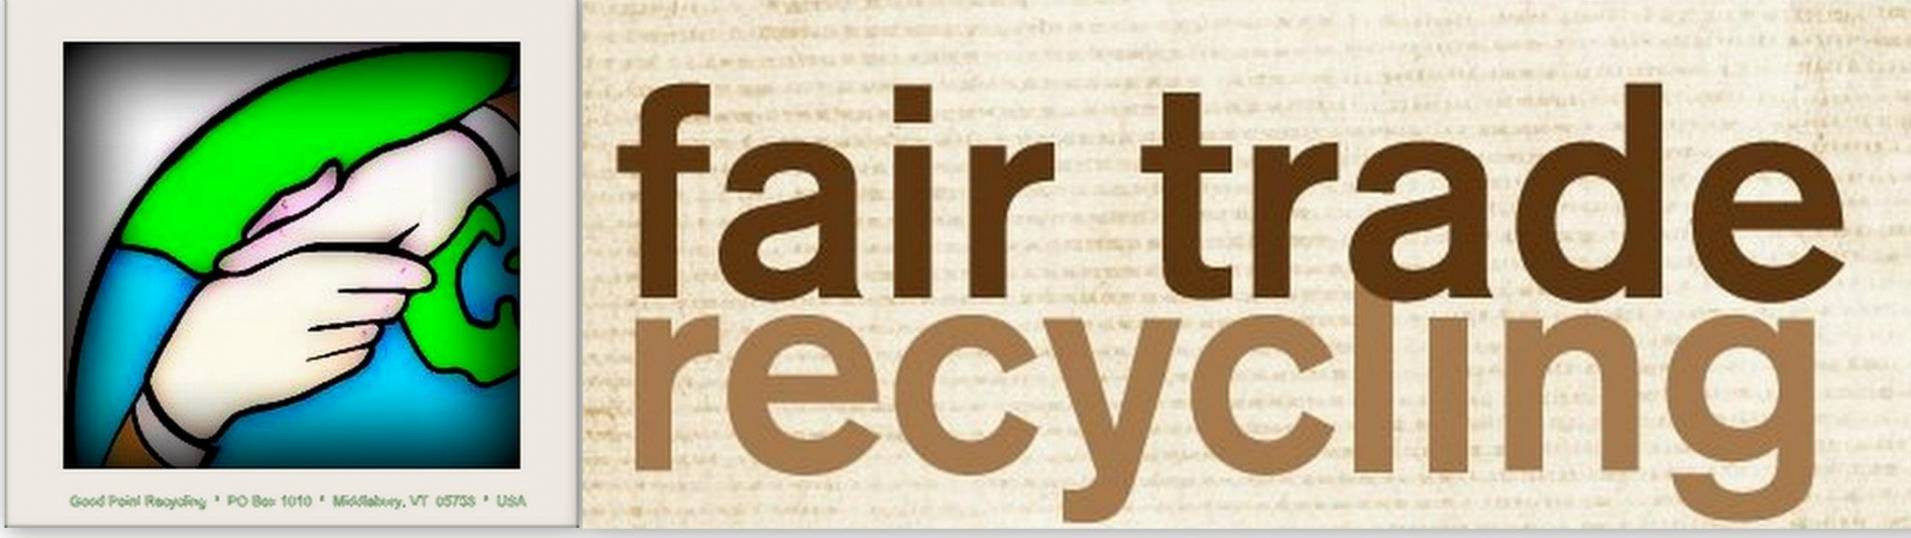 Fair Trade Recycling [WR3A] Logo